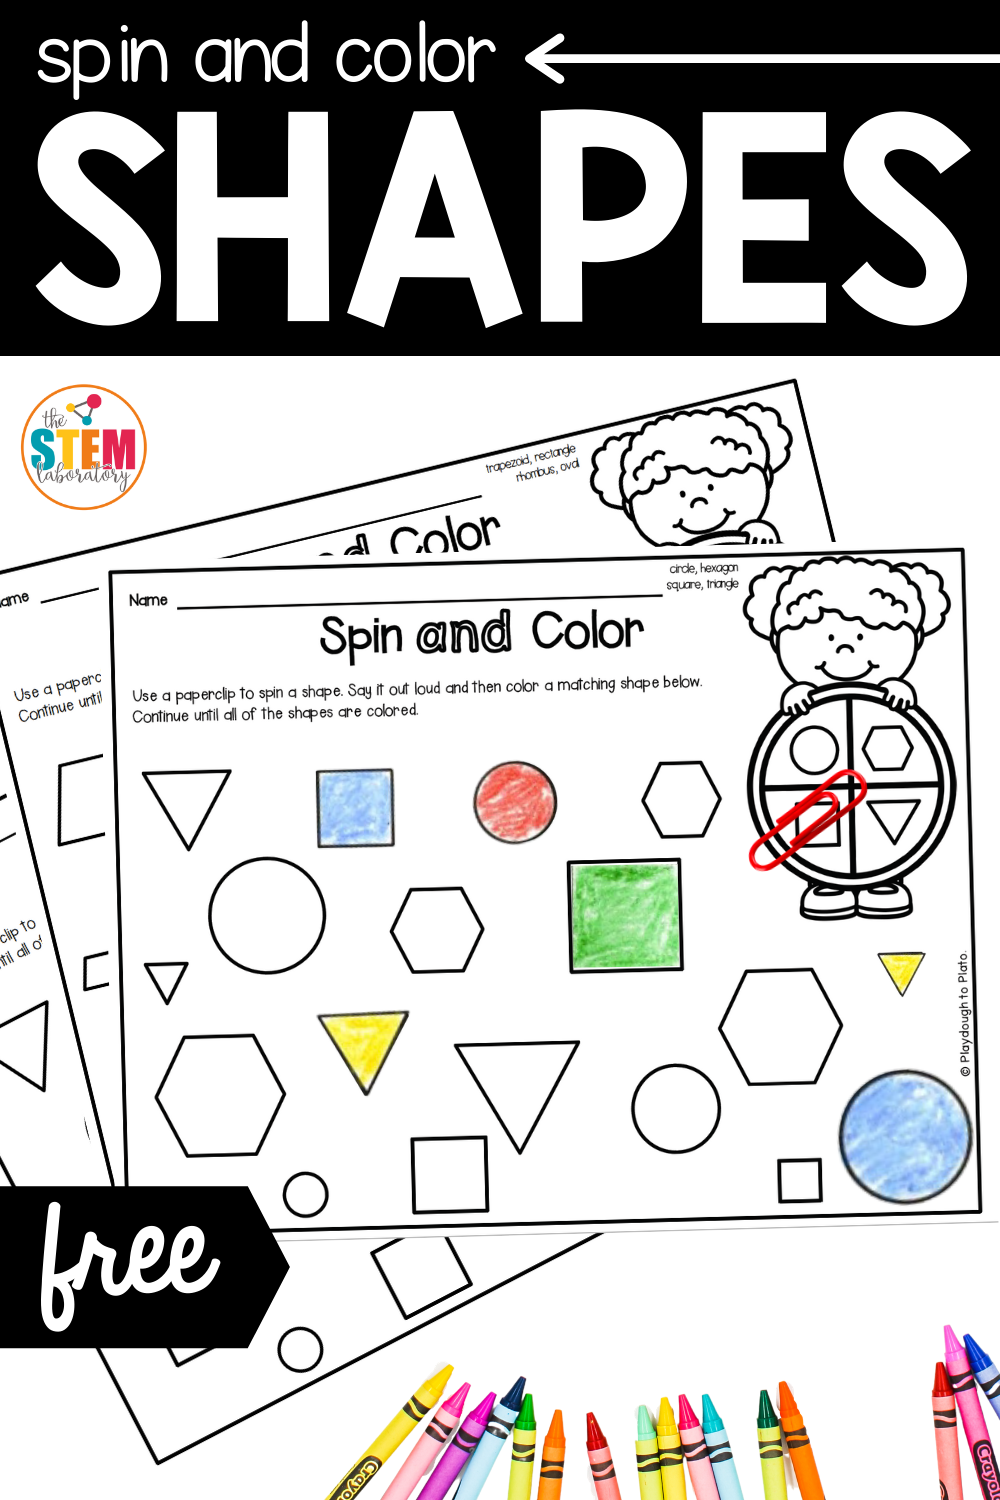 Spin and Color Shapes Game